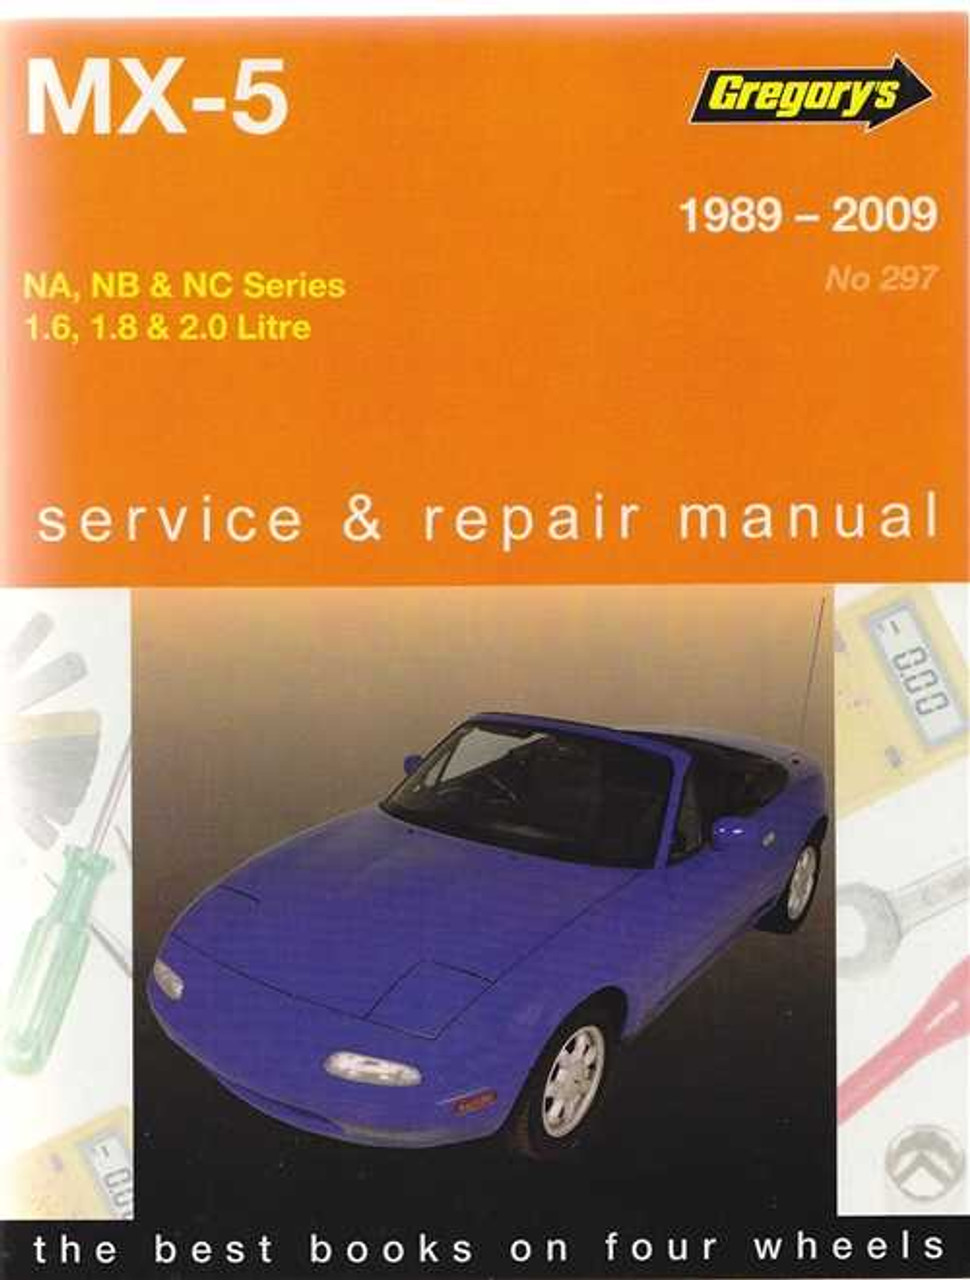 mazda mx 5 na nb nc series 1 6 1 8 2 0 l 1989 2009 workshop manual rh automotobookshop com au BMW Workshop Manual Workshop Manuals Oilfield Well Testing